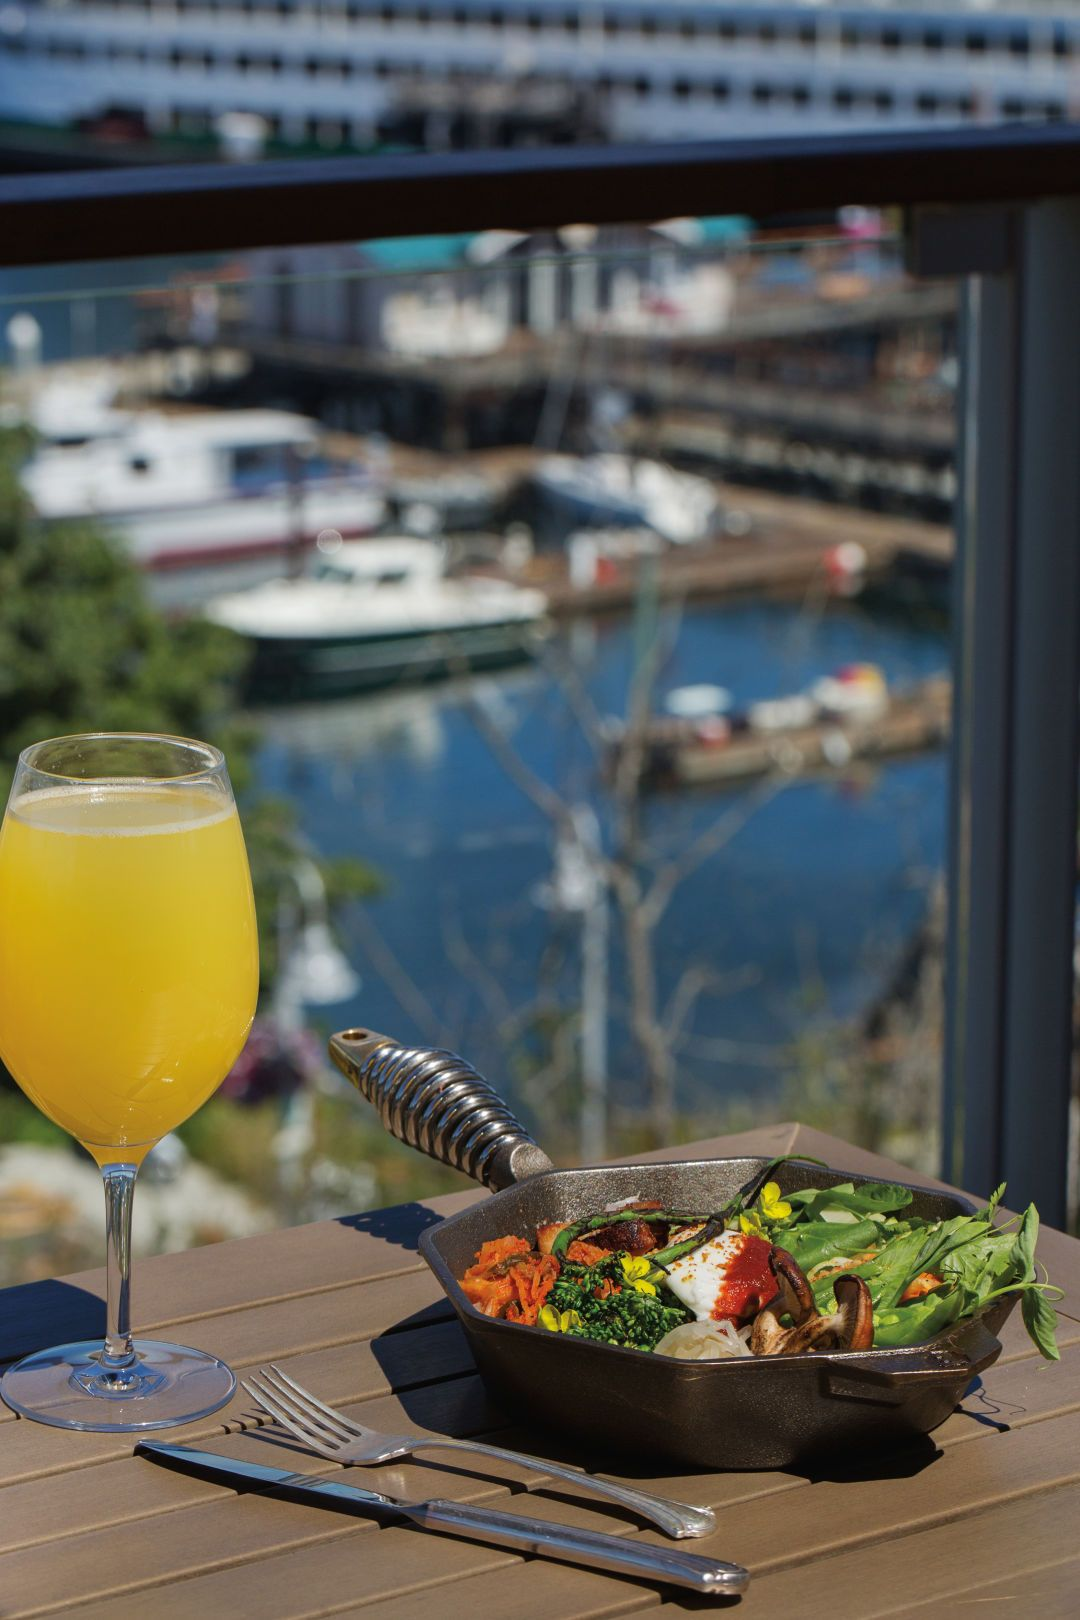 Brunch Means Bibimbap at Friday Harbor House (With images